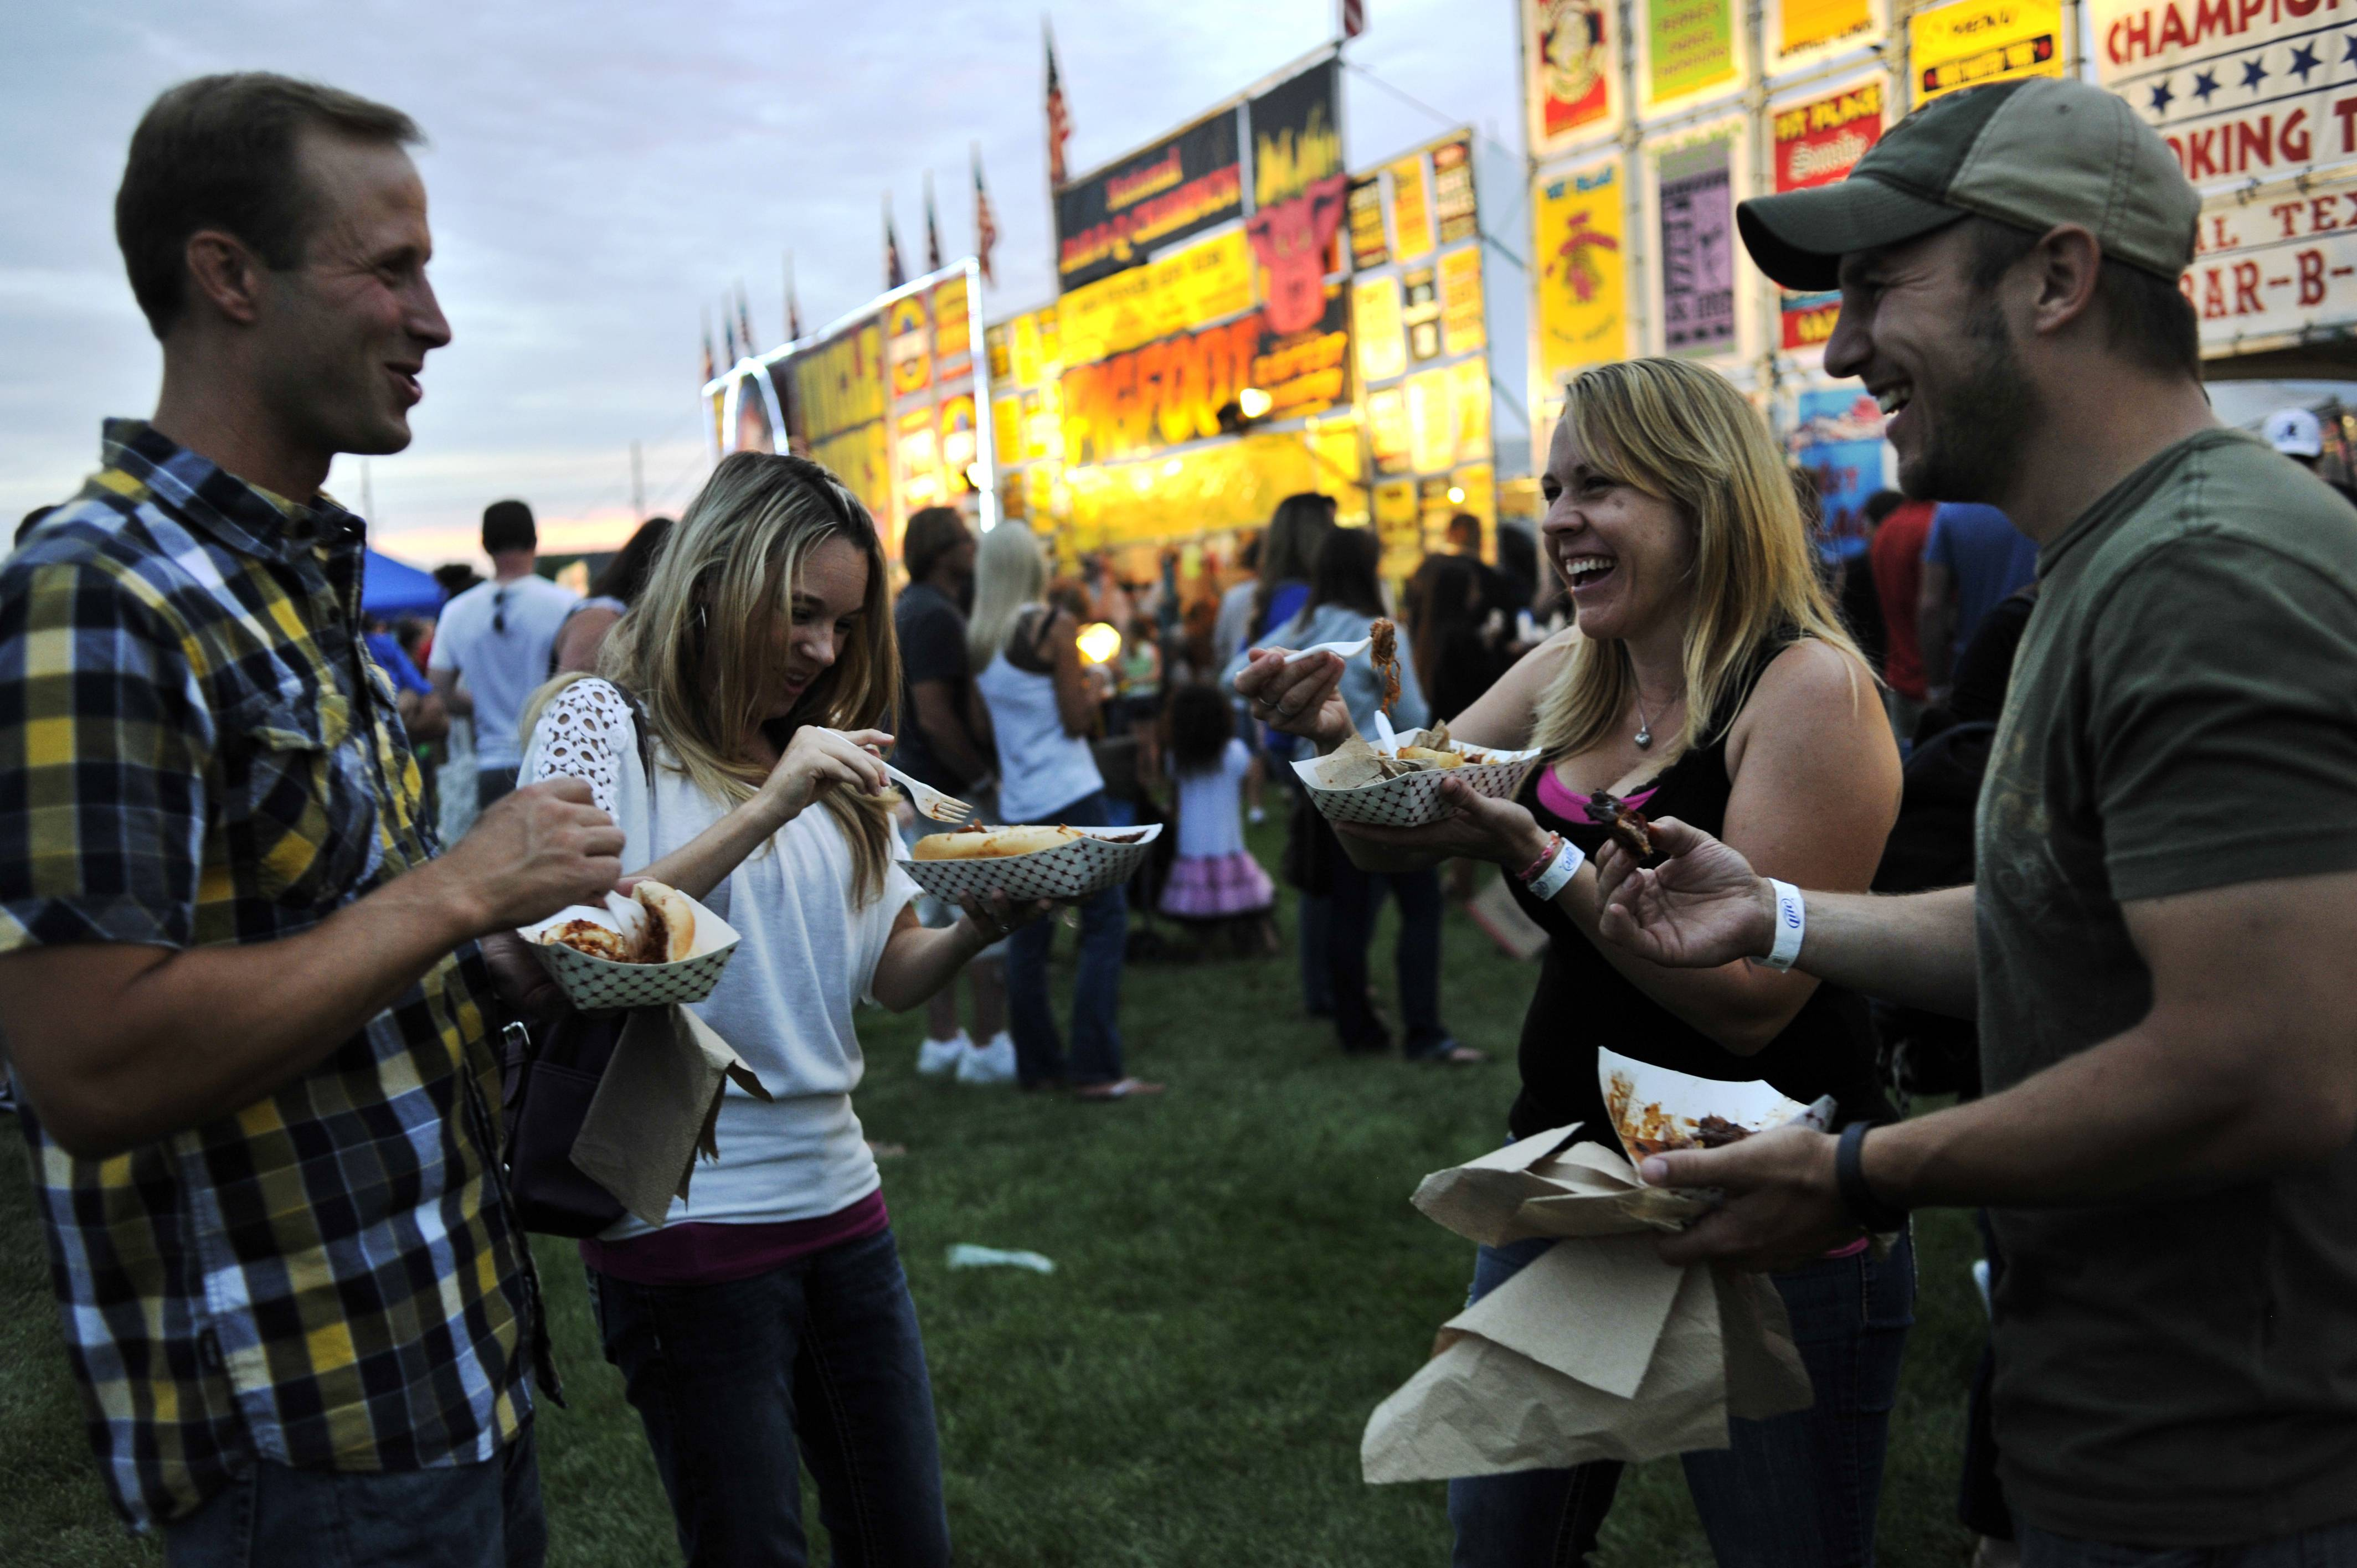 Michael and Jennifer Hodge of Cary enjoy barbecue with their friends Serene and Butch Berkowitz of Lake in the Hills, left to right, at the Rockin' Ribfest in Lake in the Hills on Friday. Festival hours are from 11:30 a.m. to 11 p.m. today and from 11:30 a.m. to 7 p.m. Sunday. Visit lithribfest.com for more.